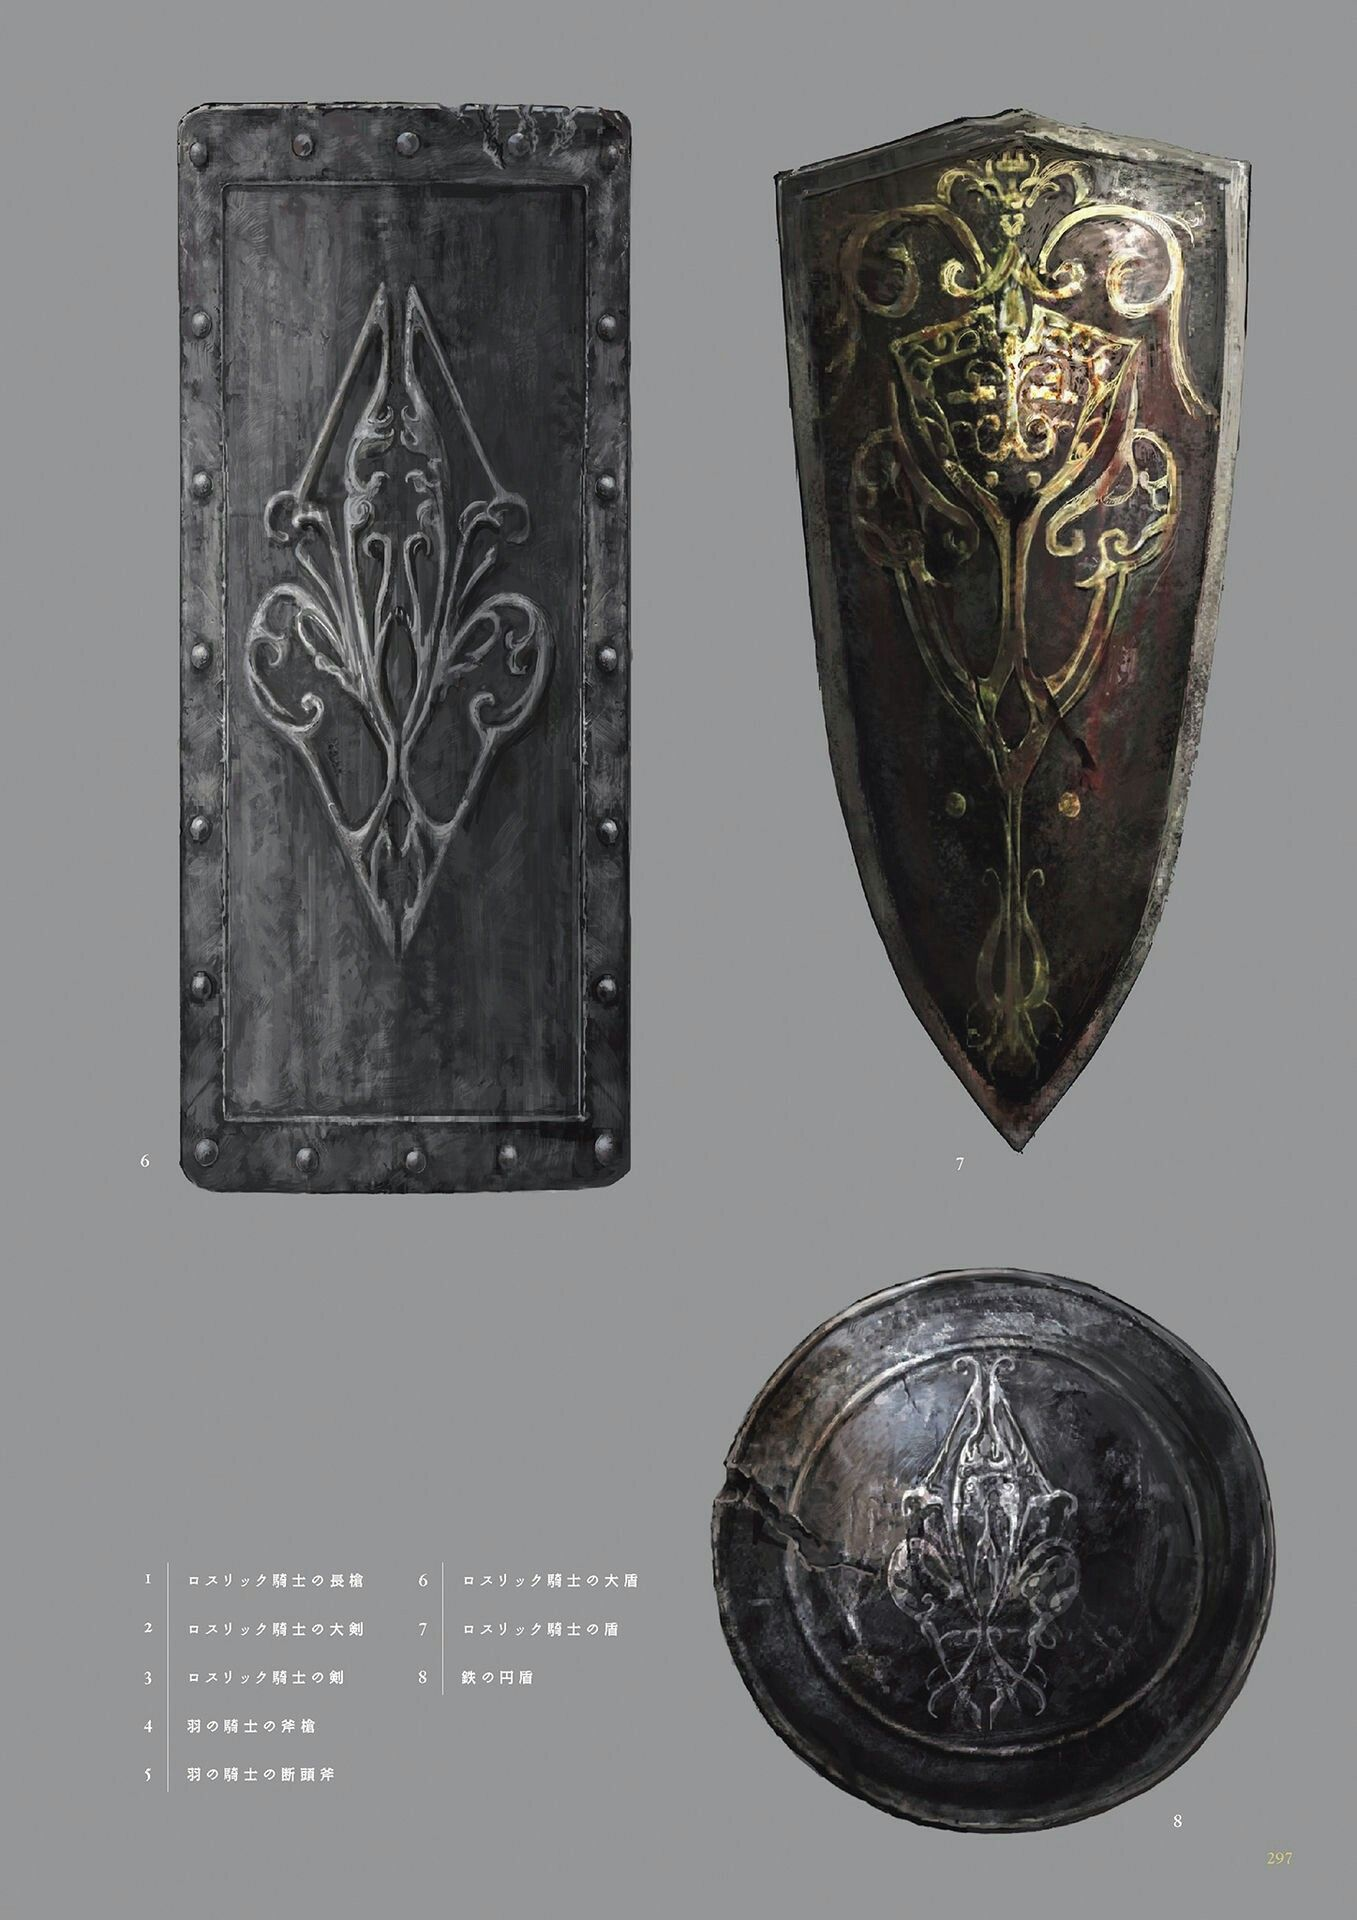 Dark Souls 3 Concept Art - Weapon Concept Art | Videogame